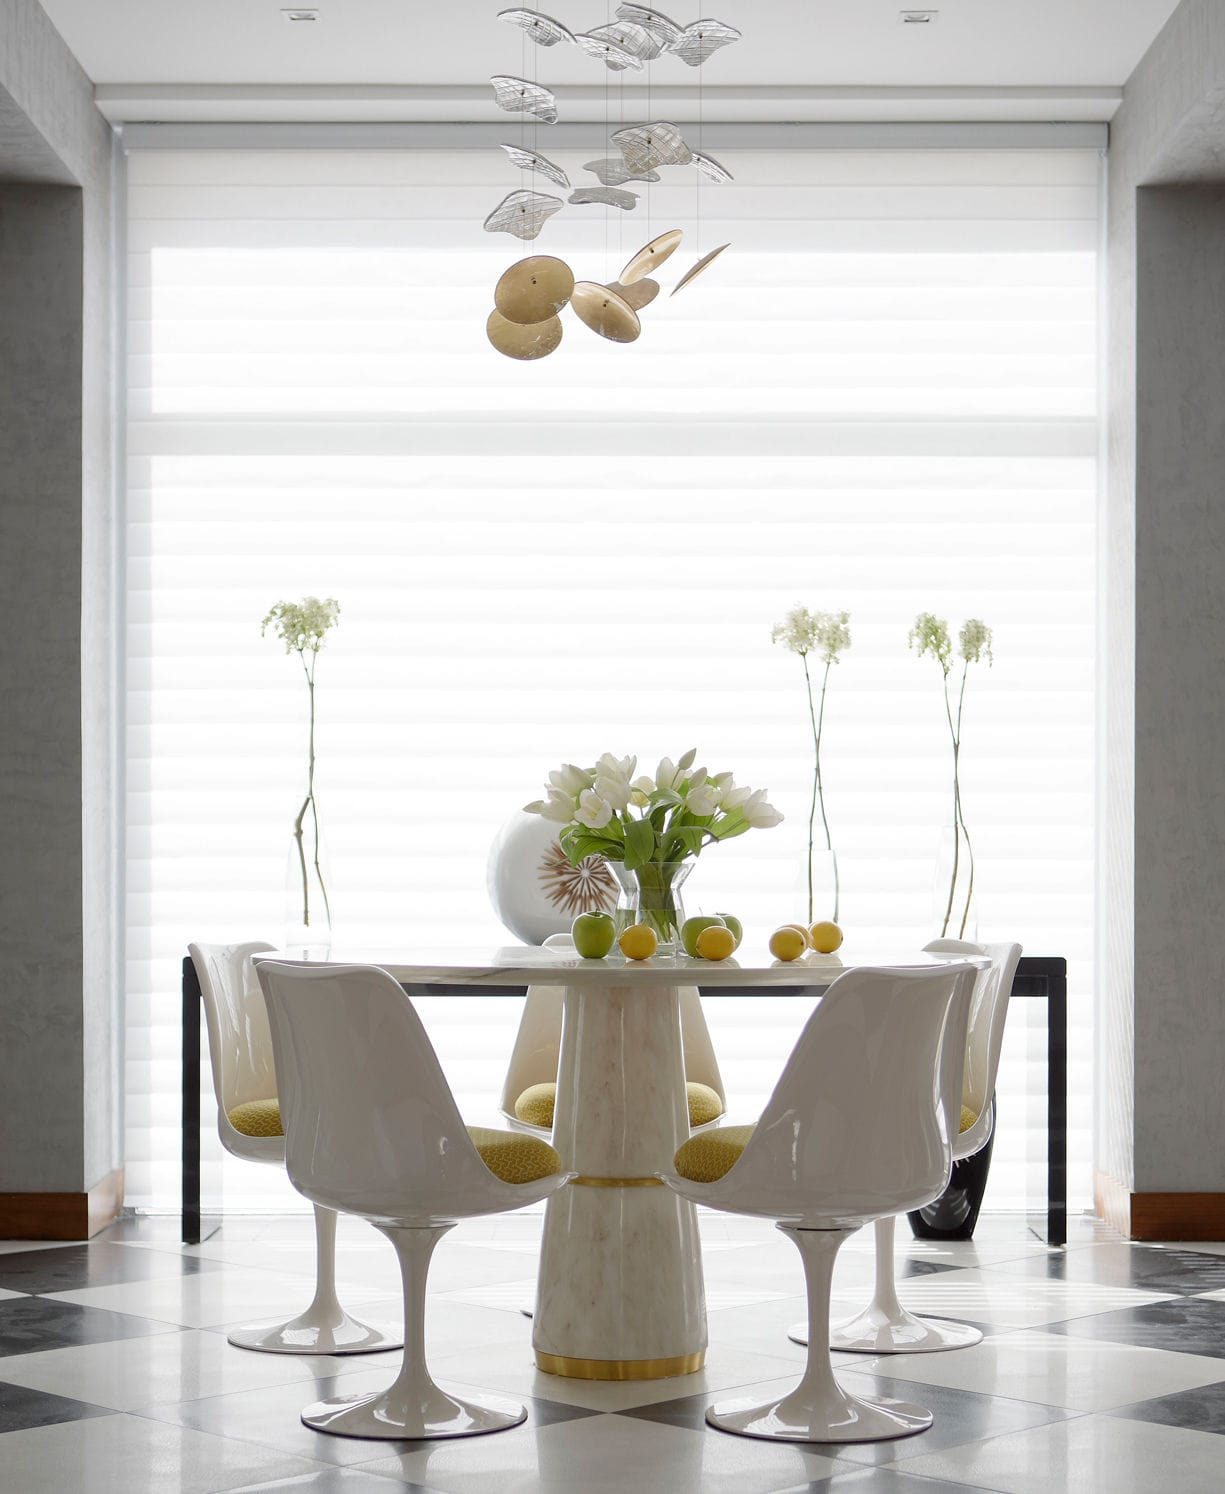 Dining Table Decor Ideas Top 25 Of Amazing Modern Dining Table Decorating Ideas To